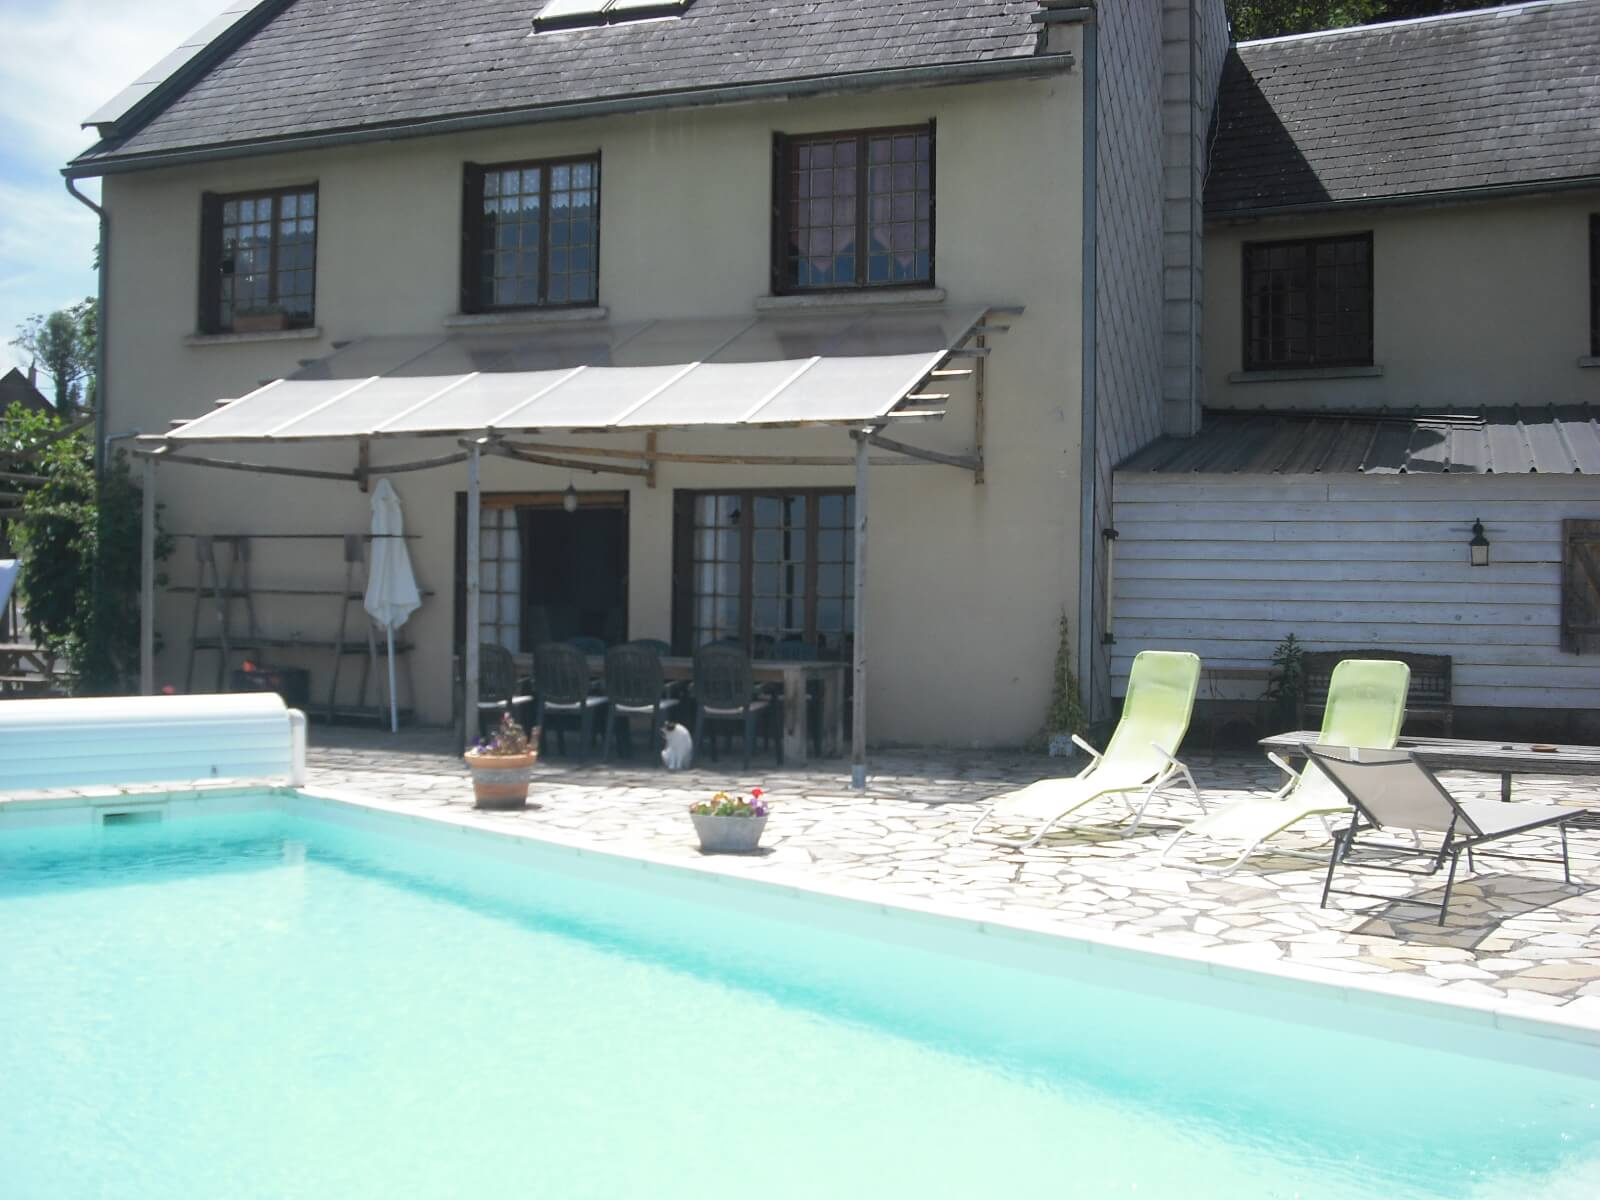 The house and swimming pool